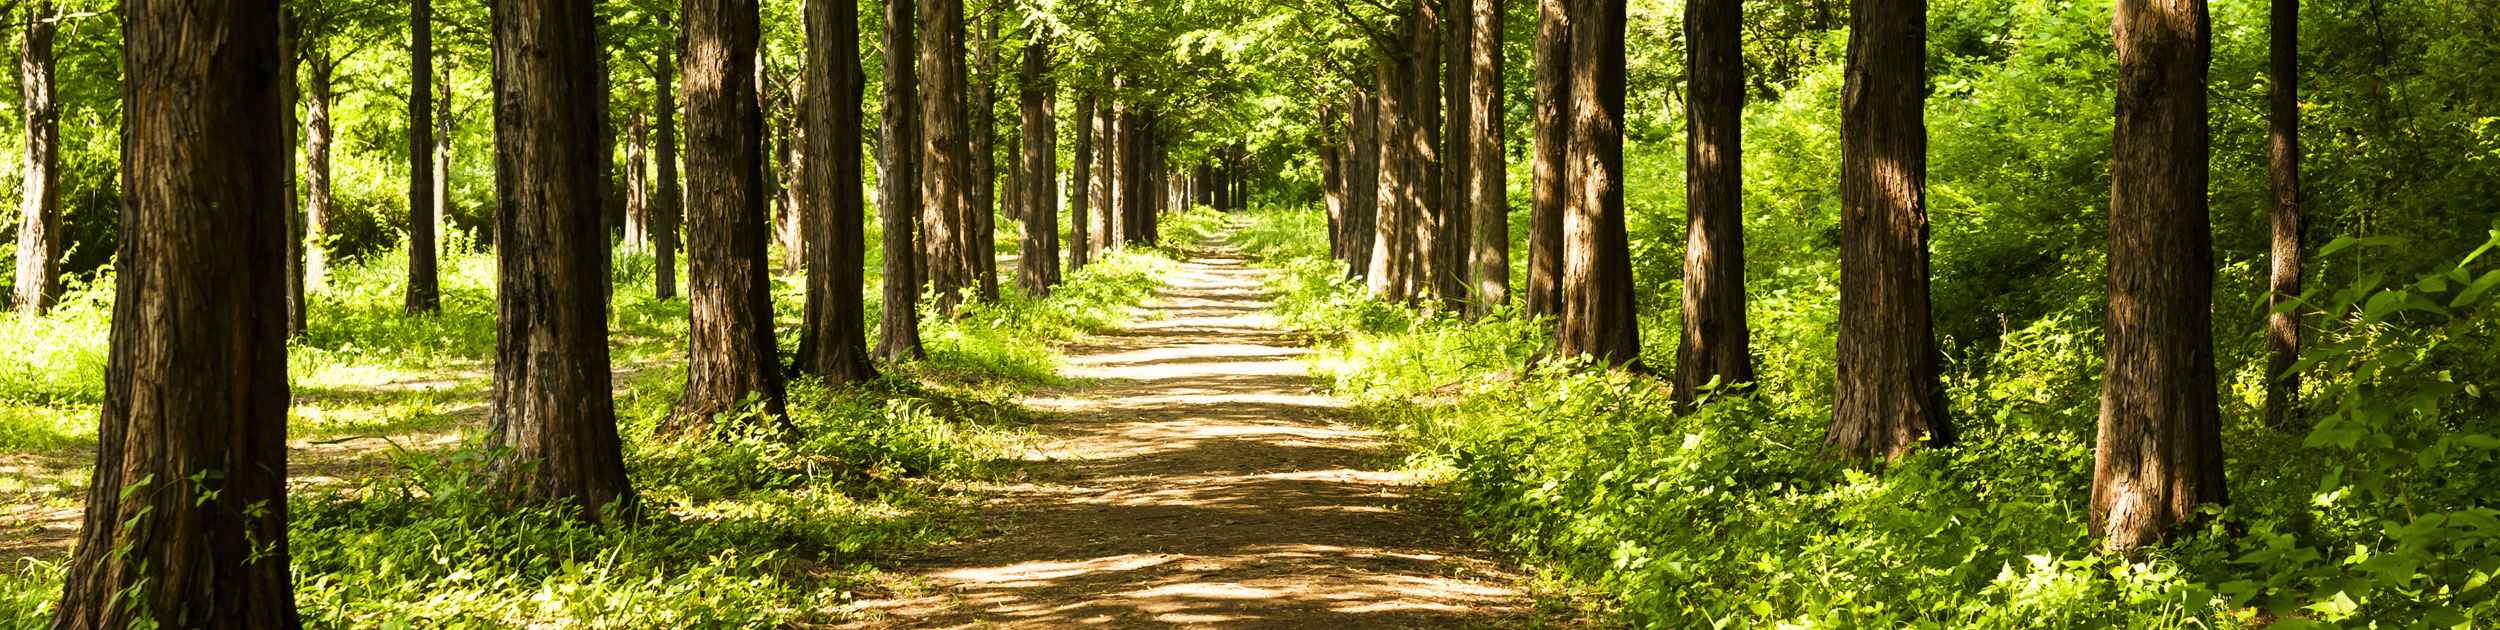 walking path in the woods surrounded by trees with sunshine showing through